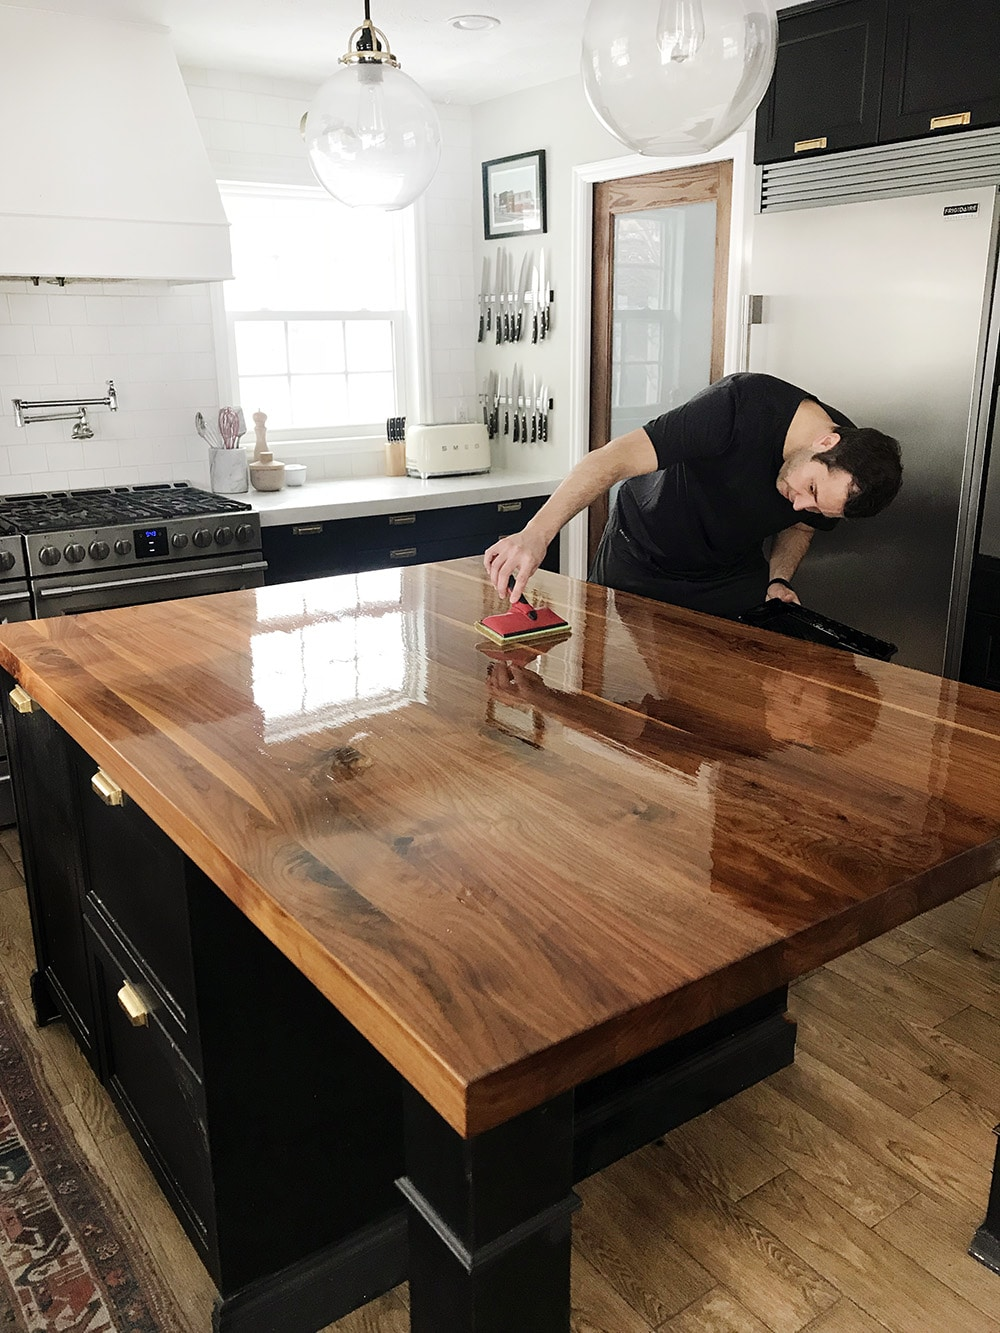 If this is your first time sealing your countertops you may need to want to do up to 4 coats